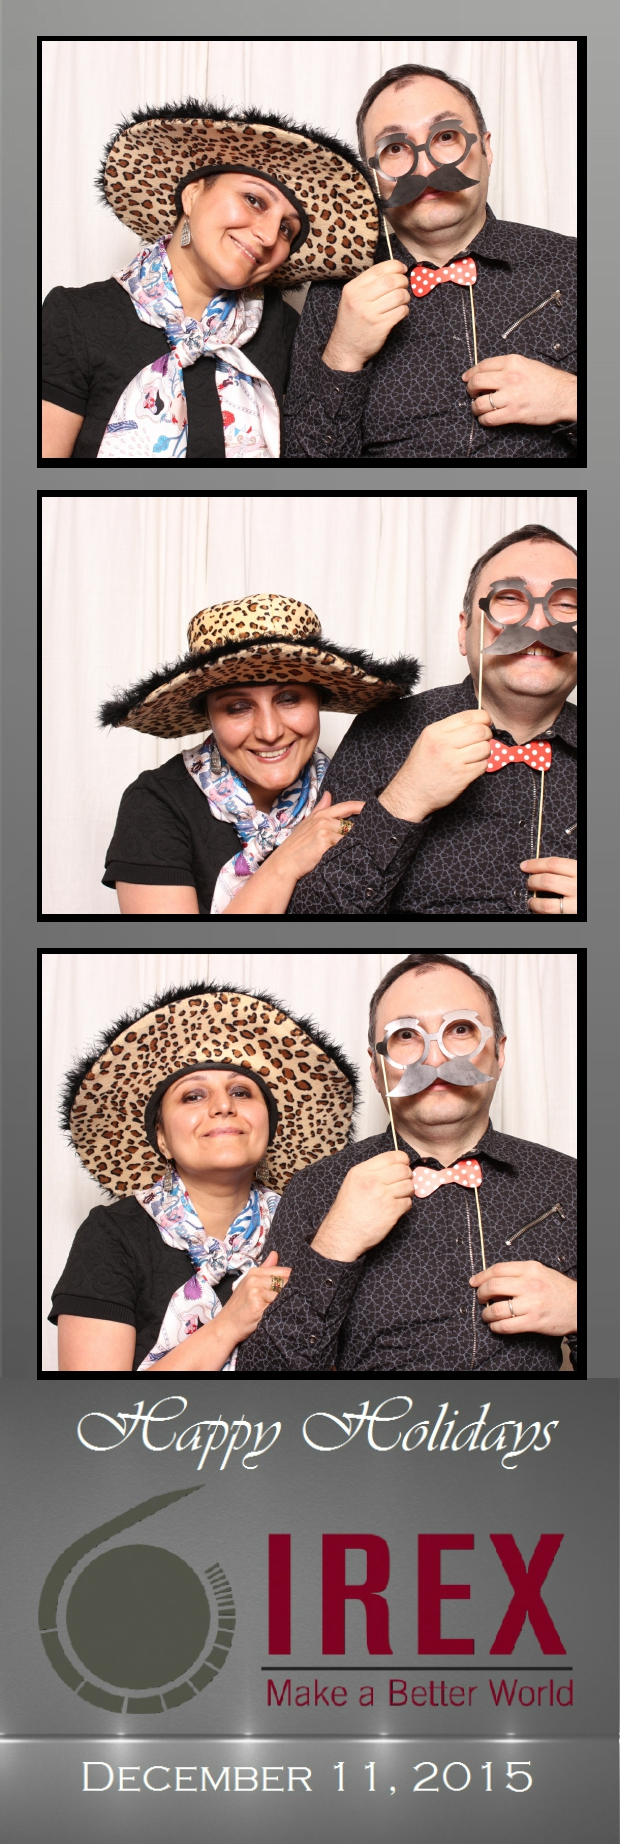 Guest House Events Photo Booth Strips IREX (39).jpg